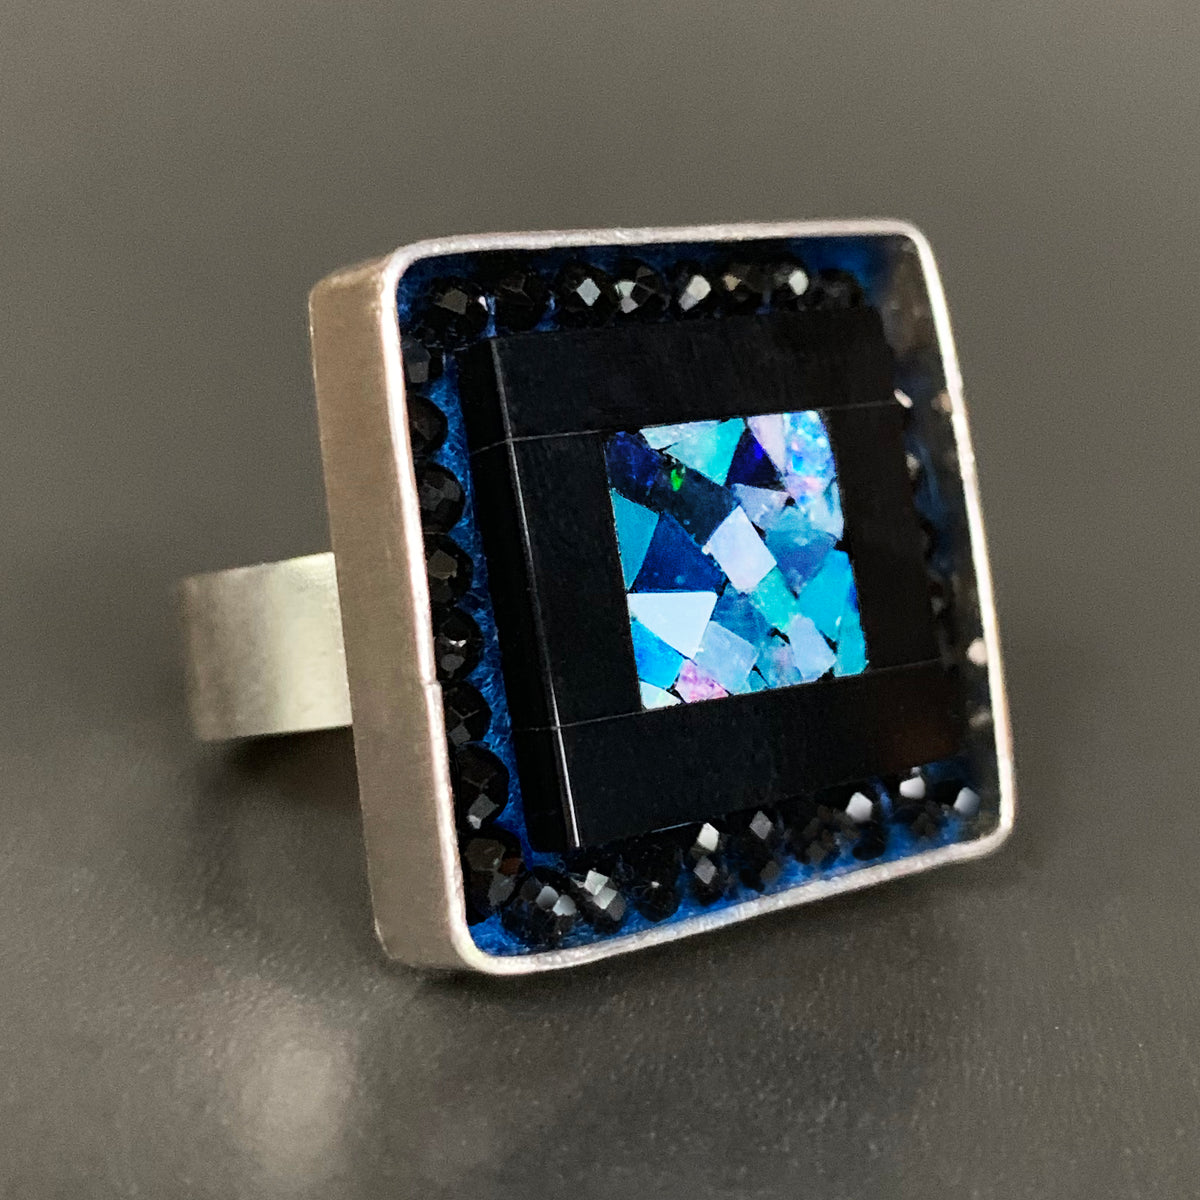 Starry Starry Night (opal, onyx, and black sapphire mosaic ring)